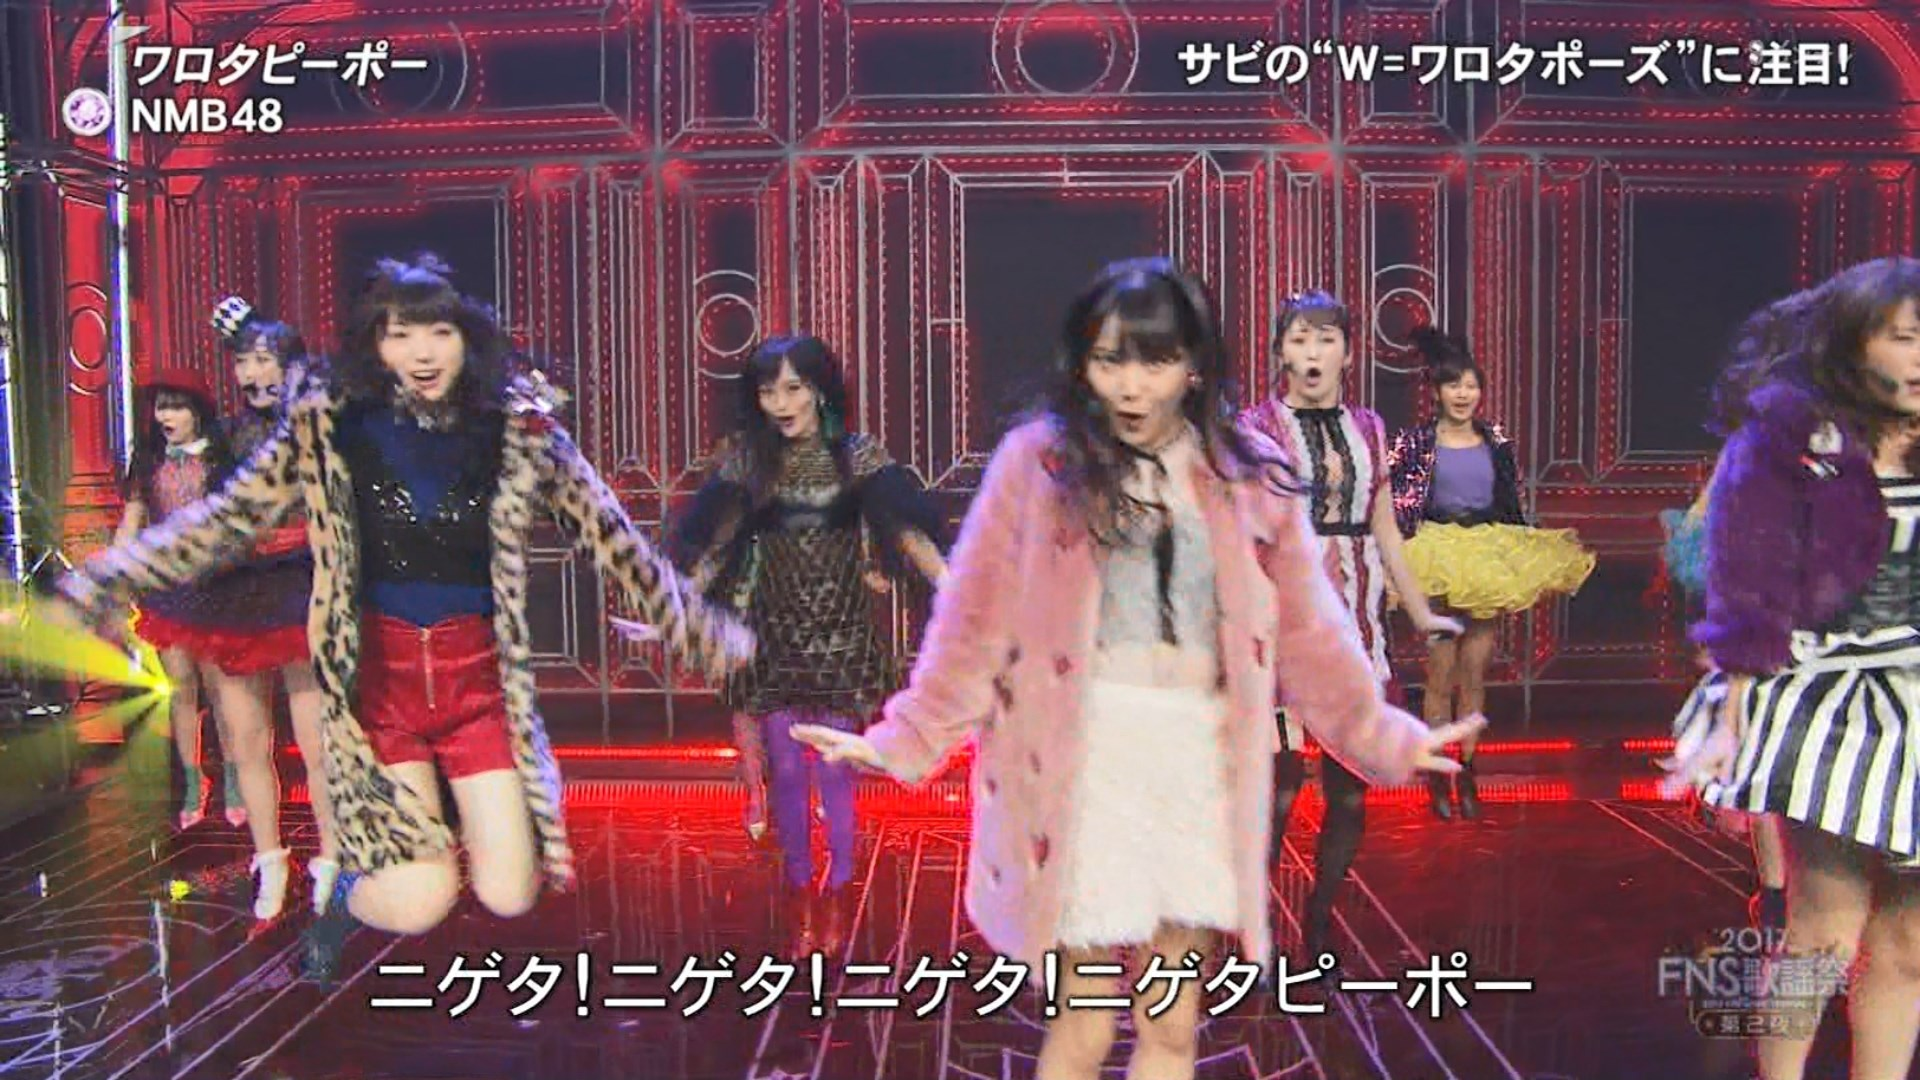 2017FNS歌謡祭第2夜・NMB48ワロタピーポーキャプ-080